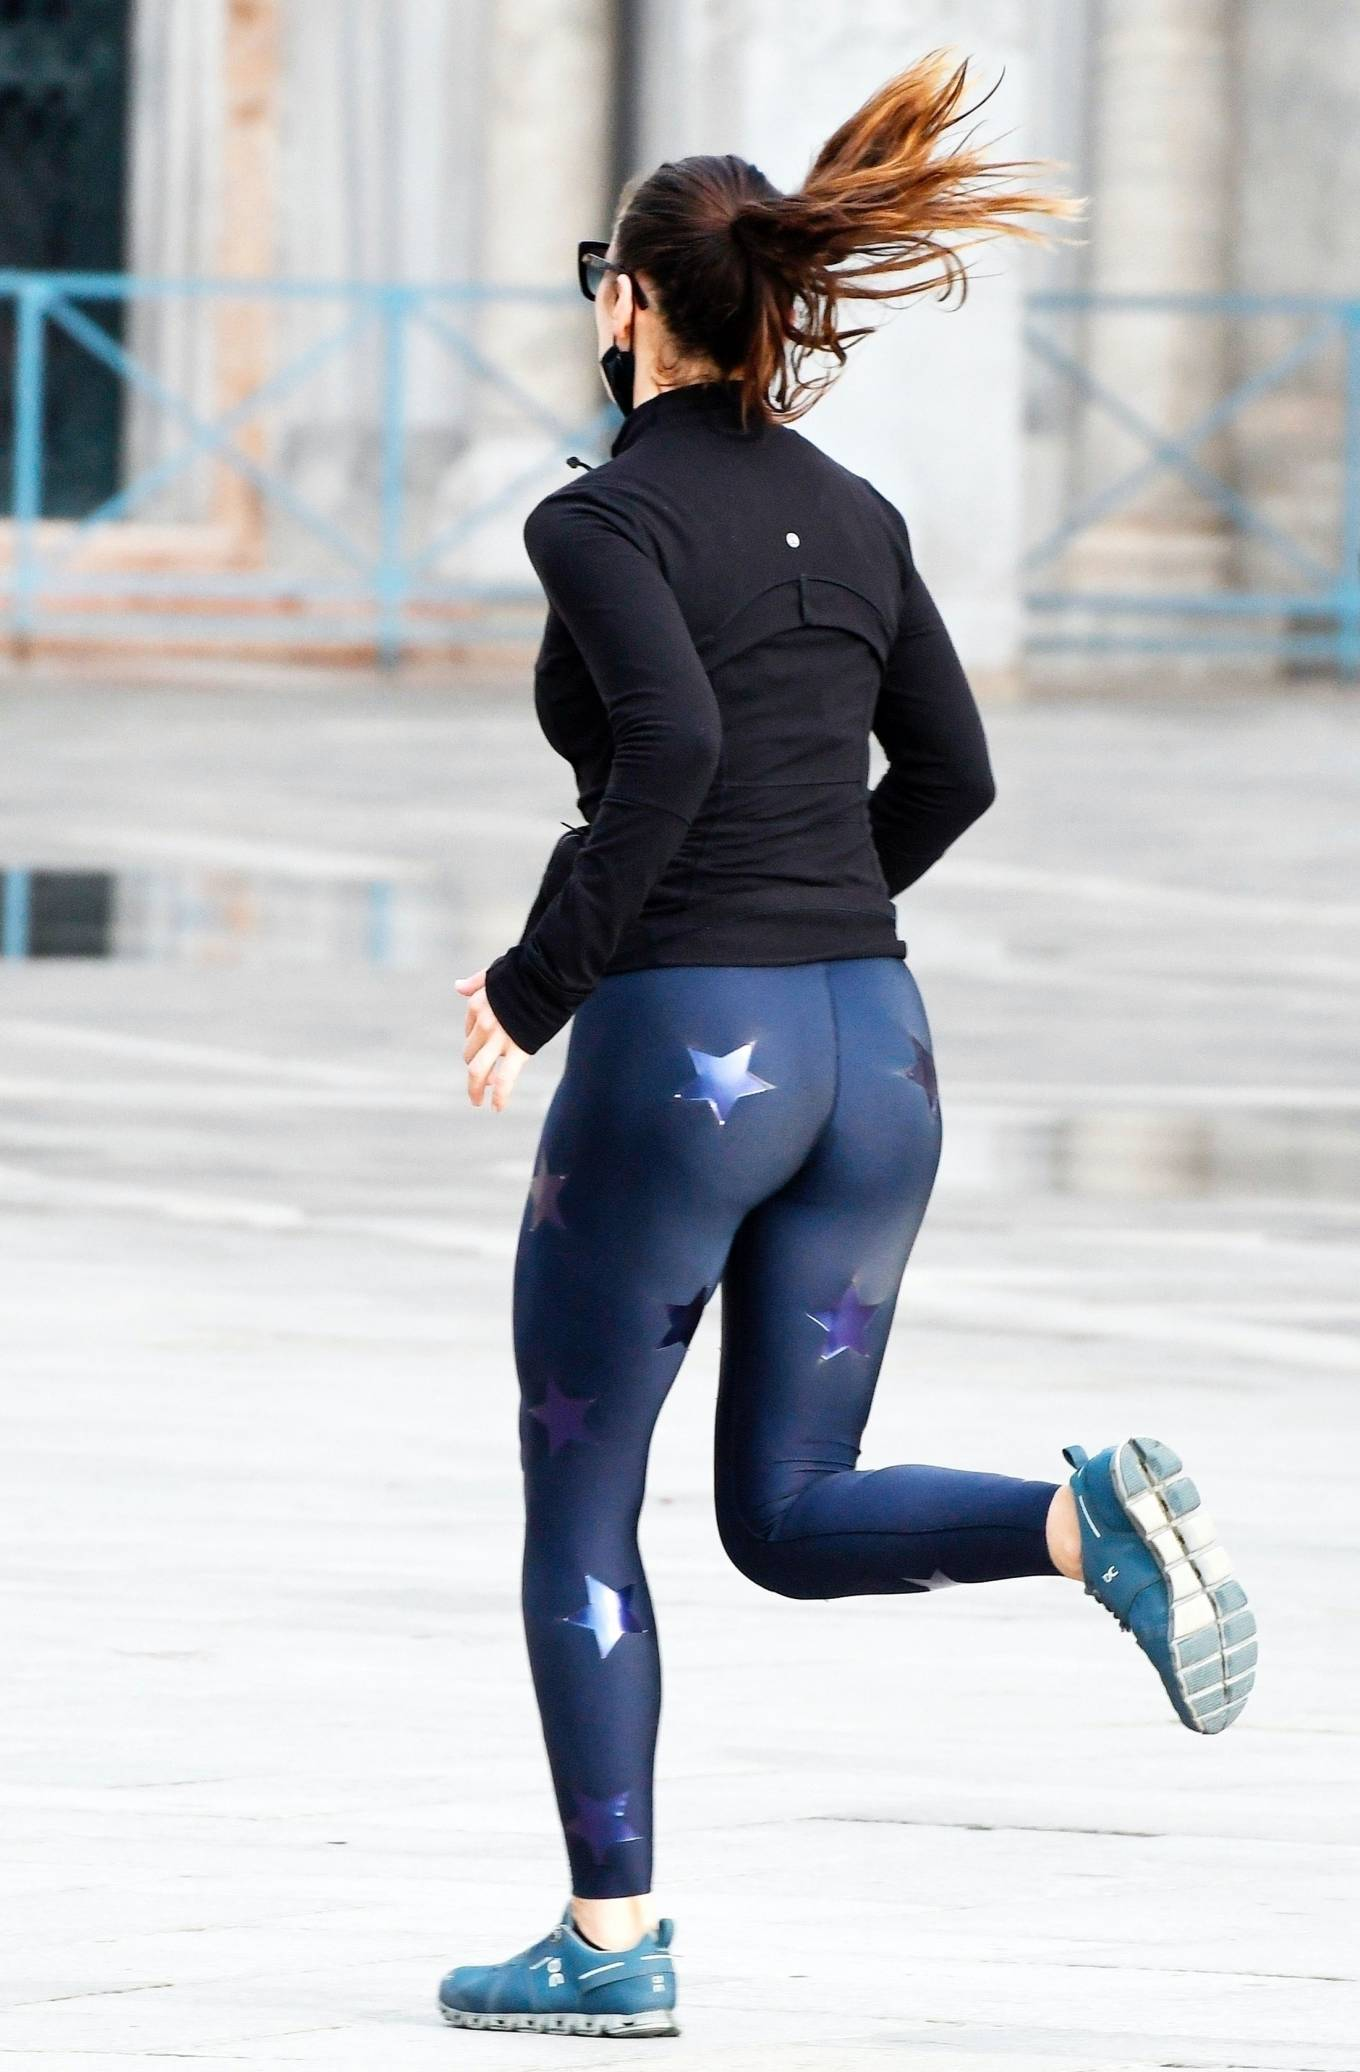 Hayley Atwell - Pictured while jogging in Venice